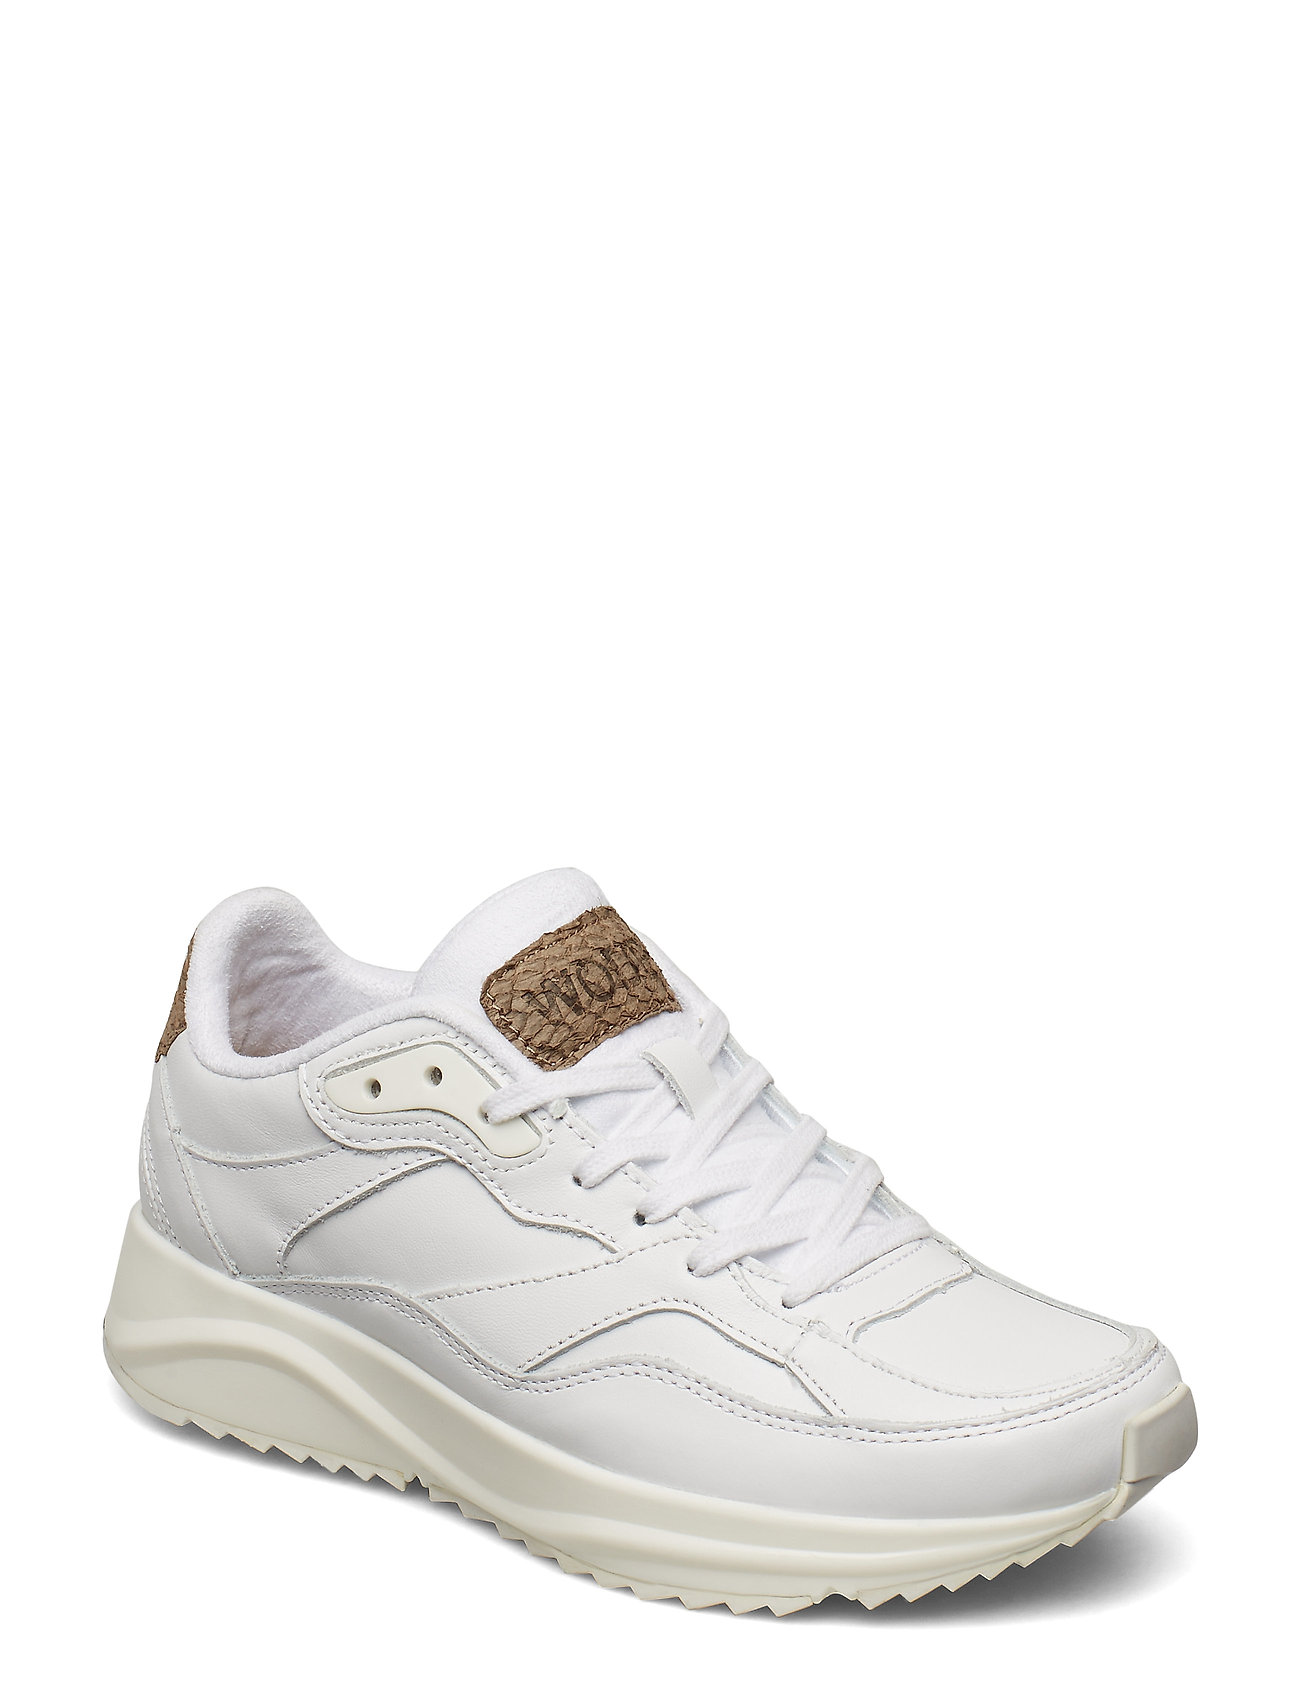 Image of Sophie Leather Low-top Sneakers Hvid Woden (3262800999)